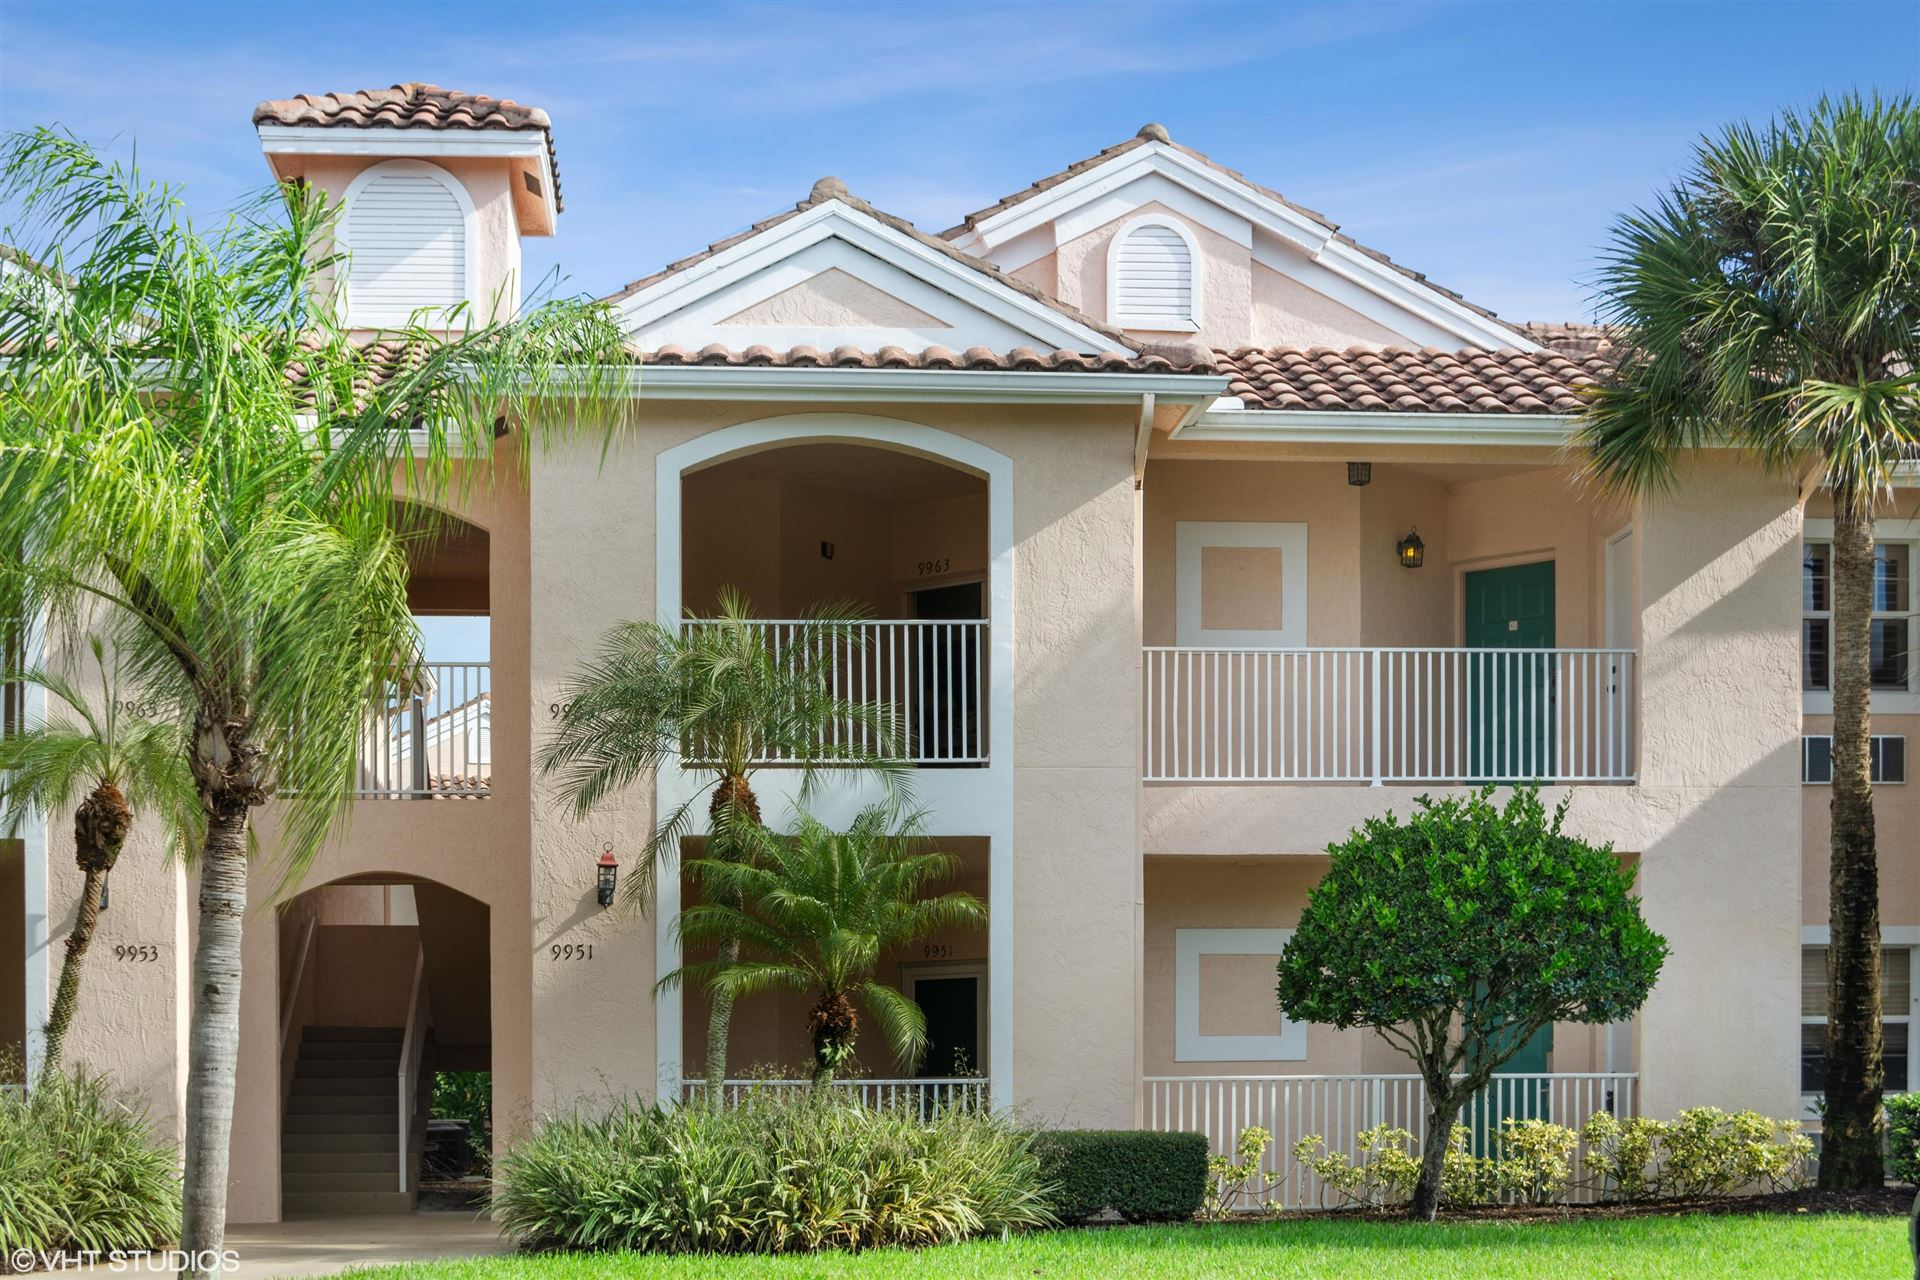 9963 Perfect Drive #158, Port Saint Lucie, FL 34986 - #: RX-10675316